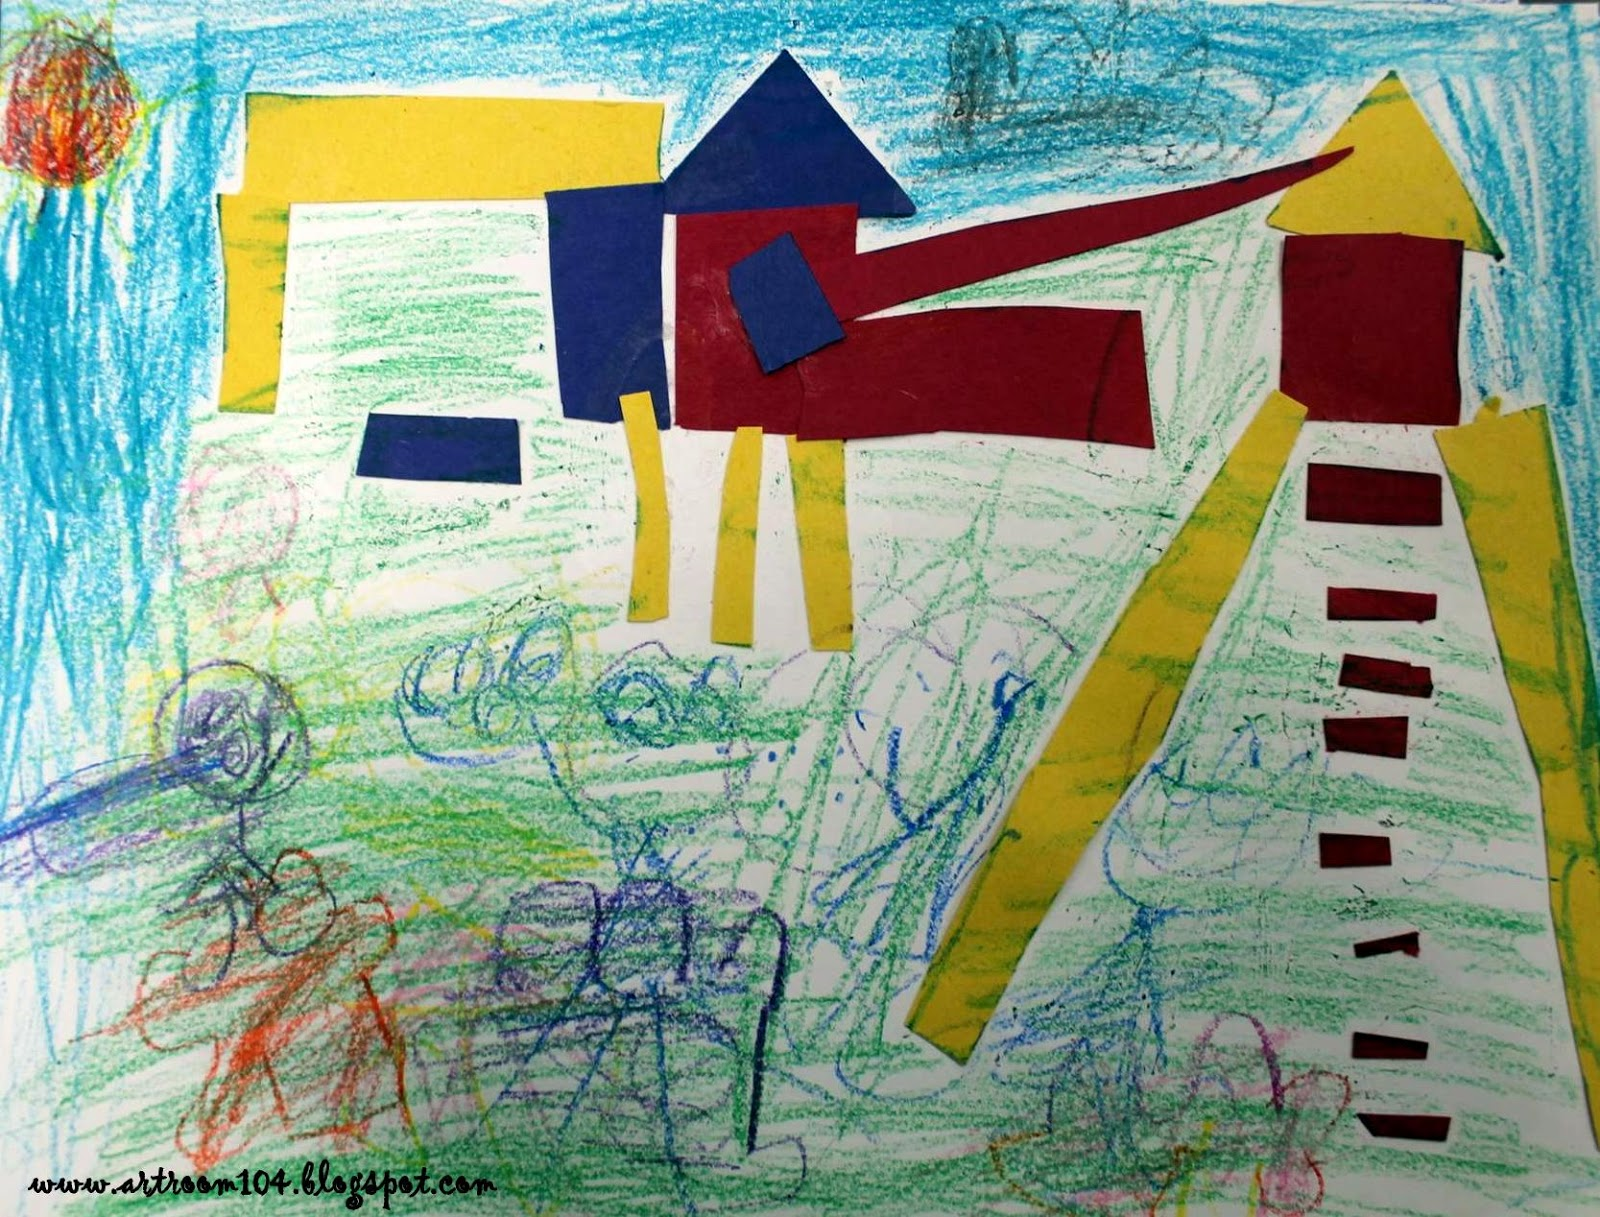 Art Room 104: Primary Playgrounds: A Review in Shape and Primary Colors!